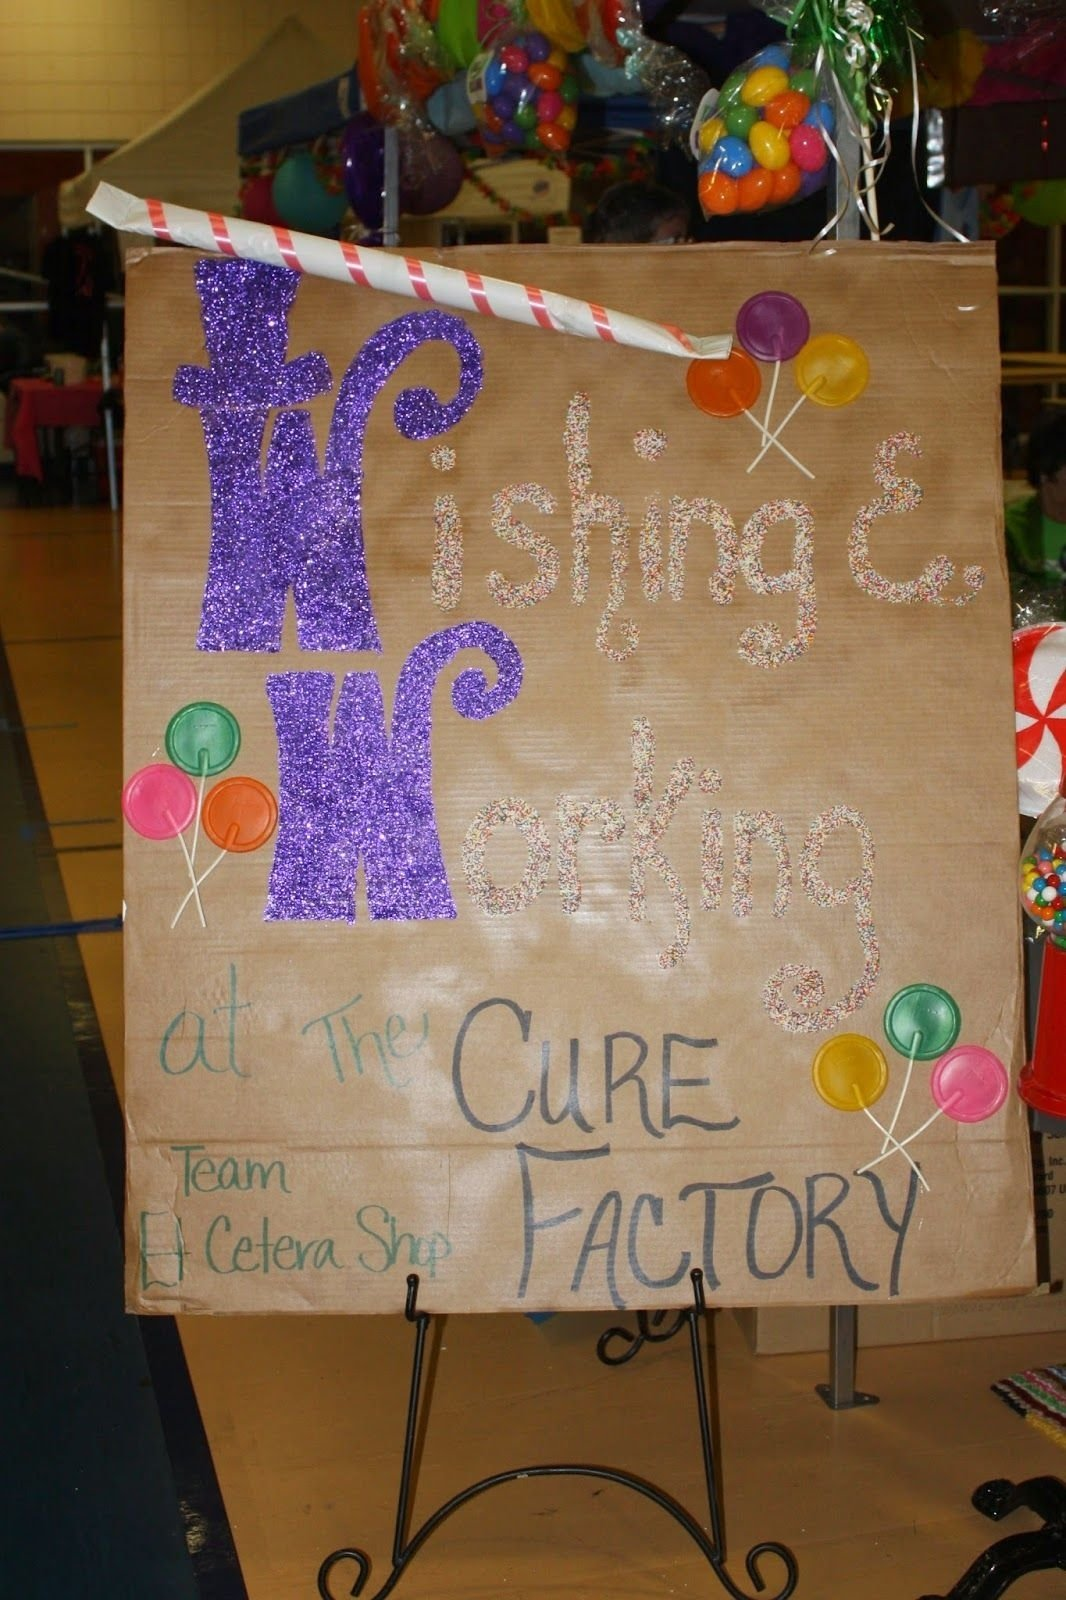 10 Most Recommended Relay For Life Fundraiser Ideas cassi selby relay for life campsite decorating and on site 1 2021